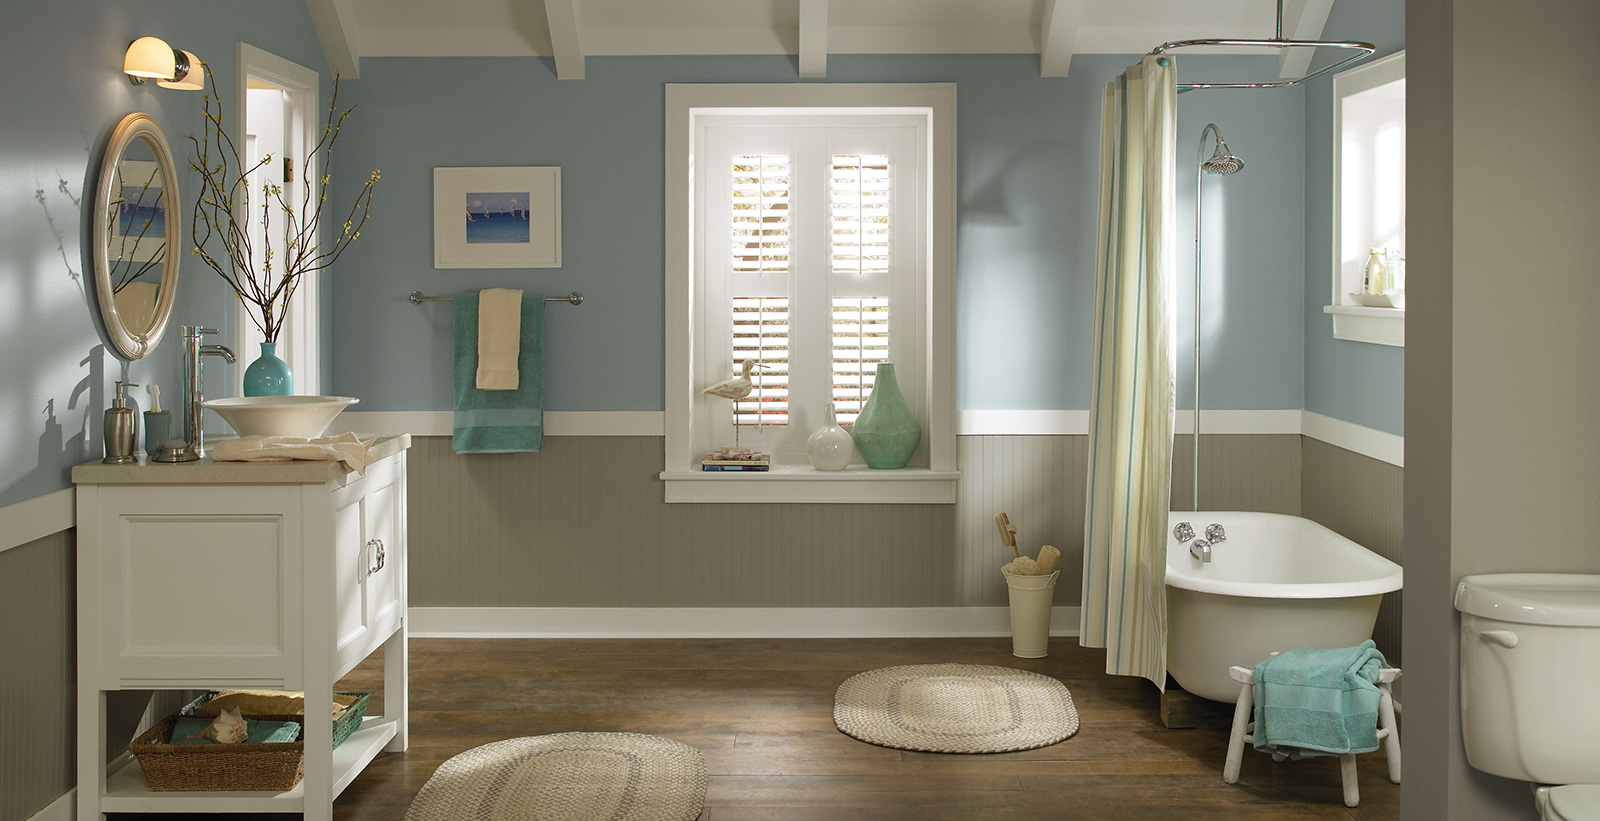 Casual styled bathroom with tan and light blue split walls, white trim, white vanity, and oval mirror.